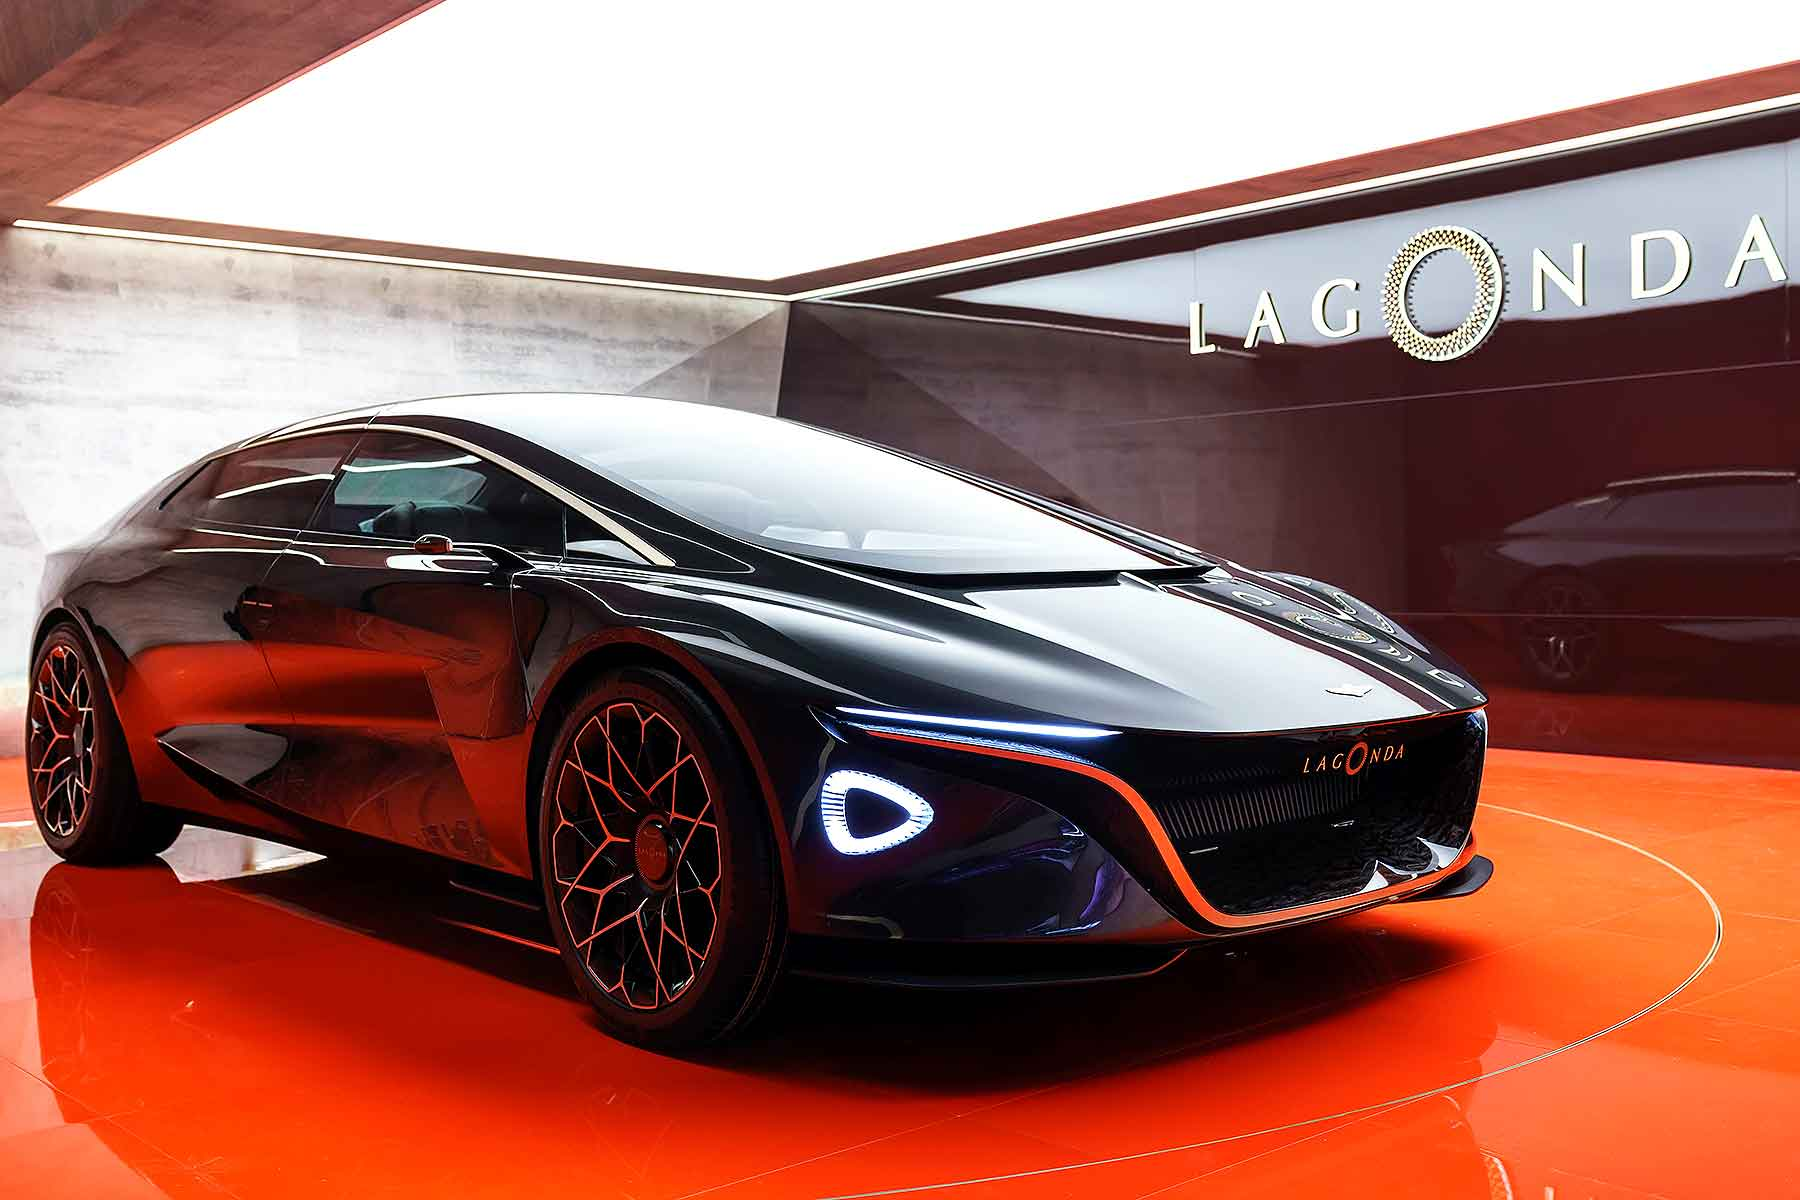 Aston Martin Lagonda Vision Concept Rips Up The Luxury Car Rulebook